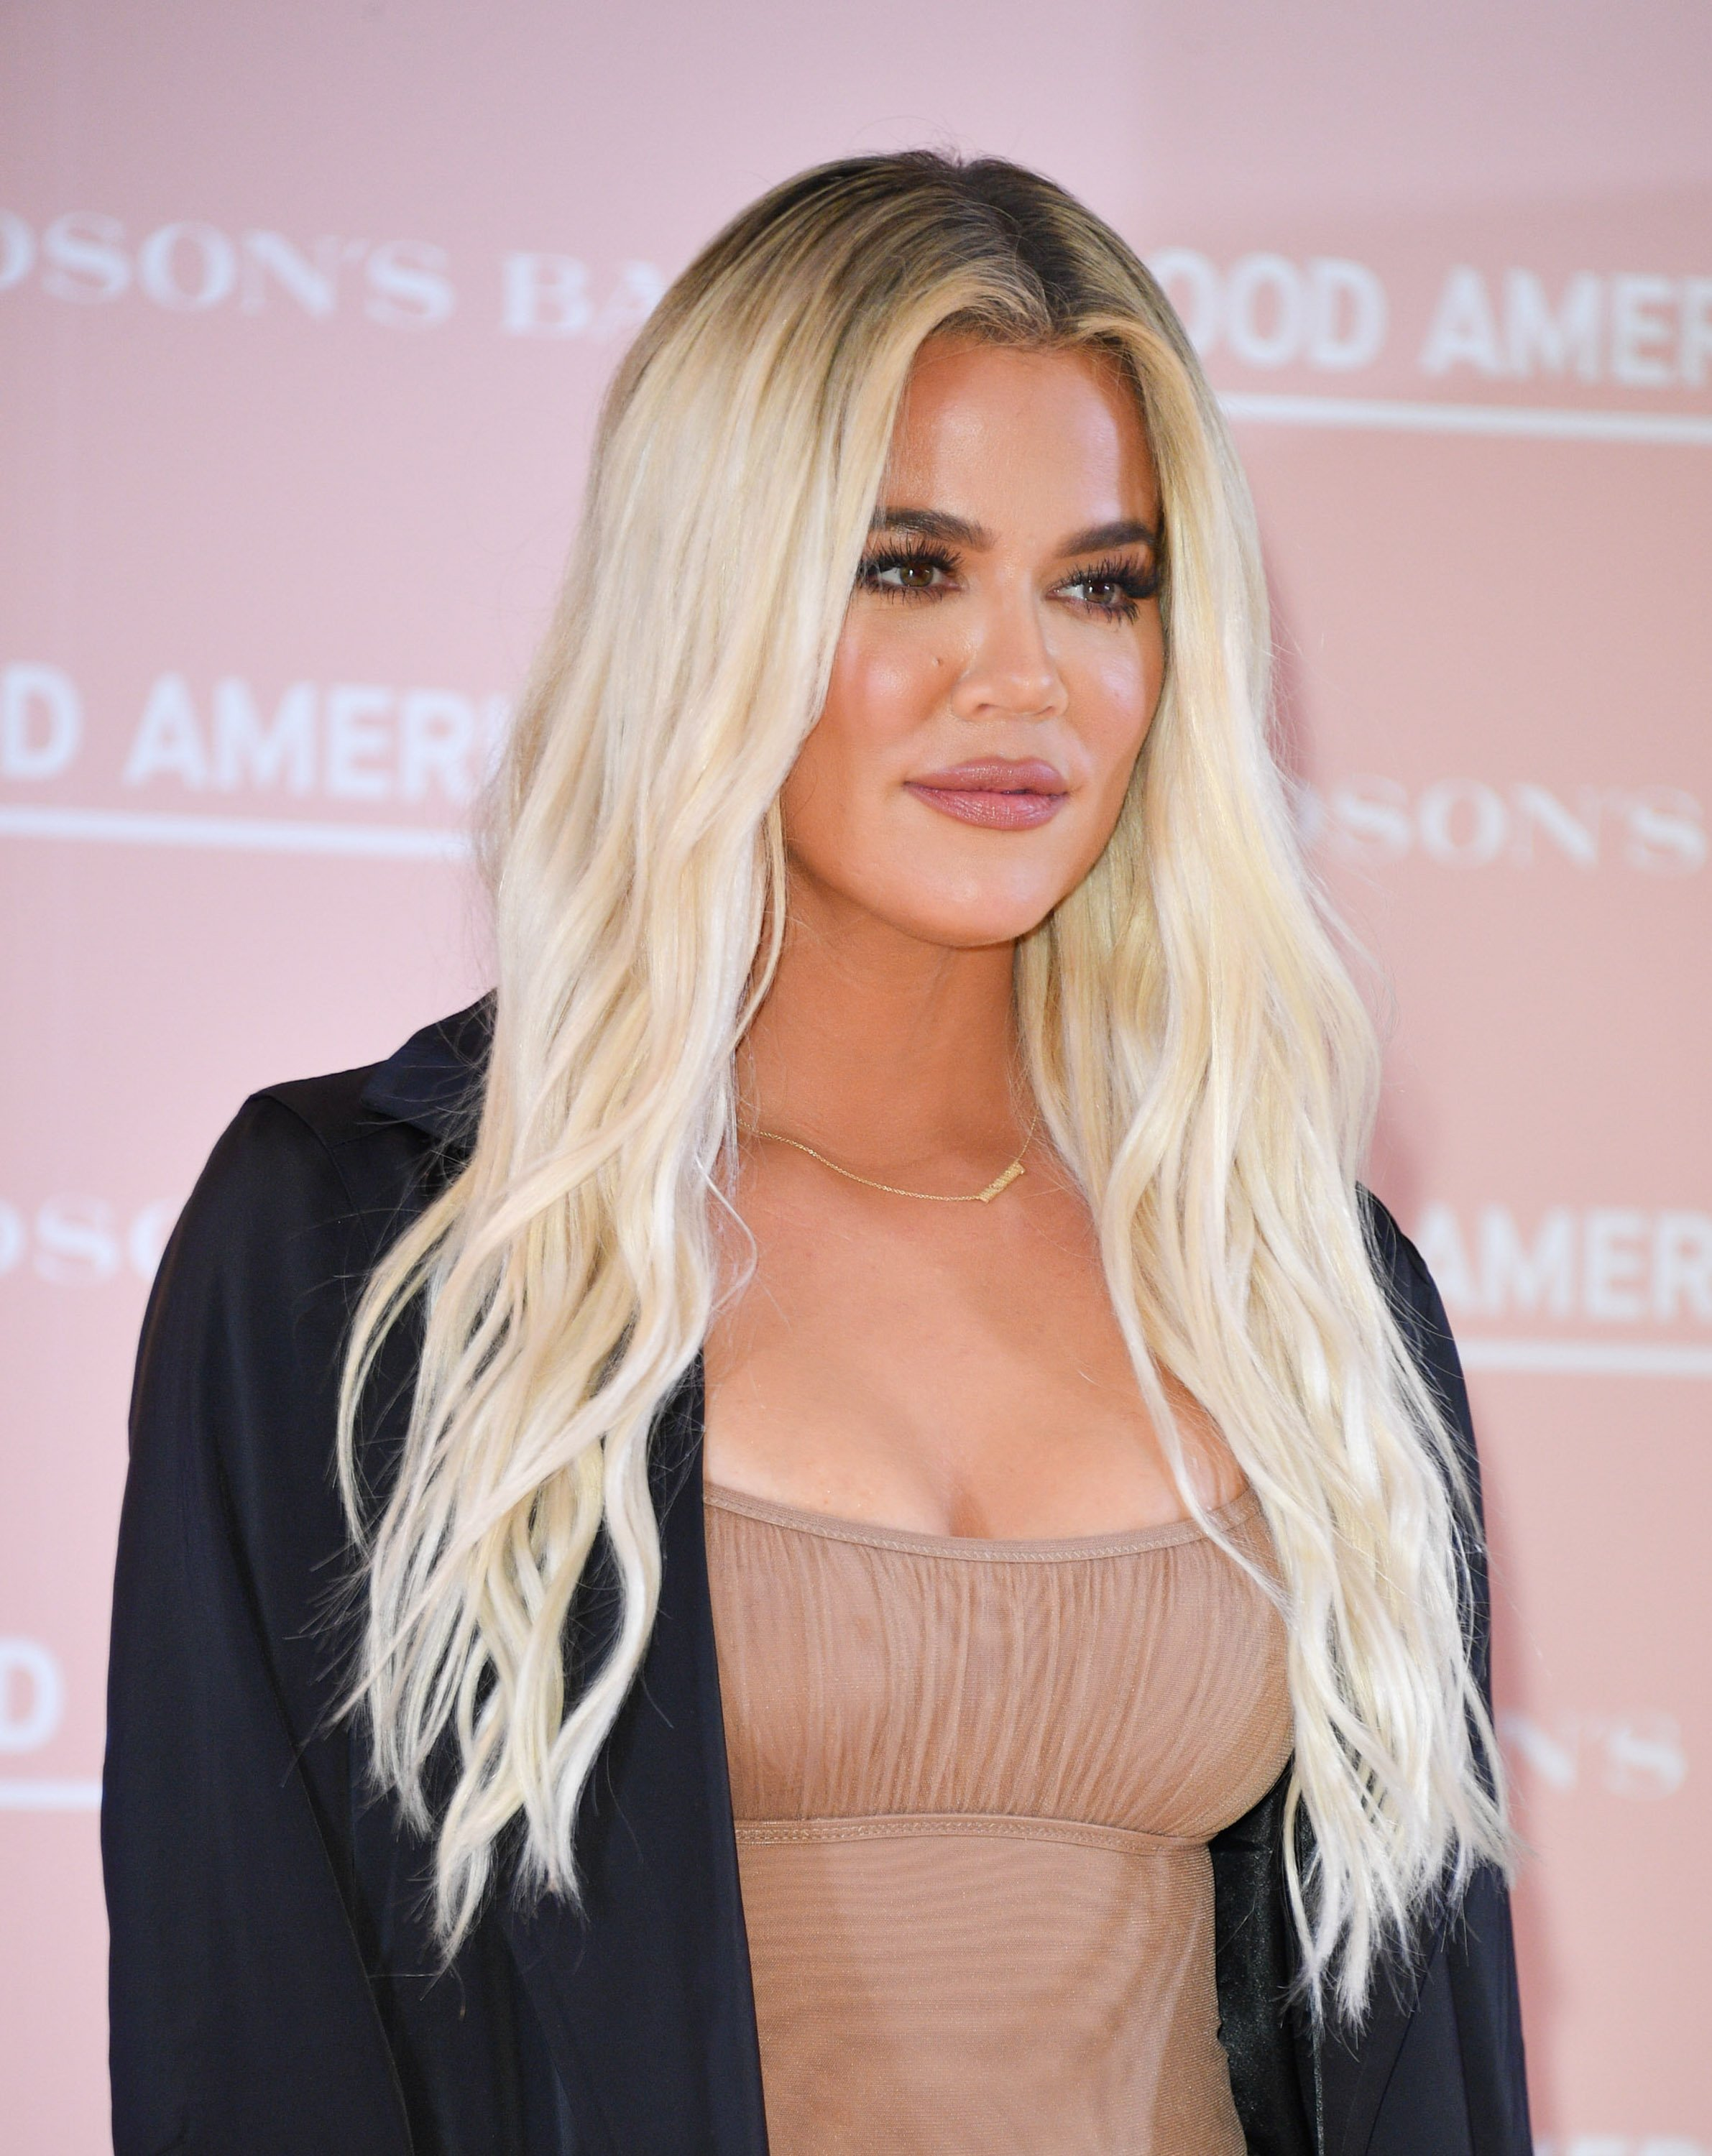 Khloe Kardashian attends the launch of Good American in Toronto on September 18, 2019 | Photo: Getty Images